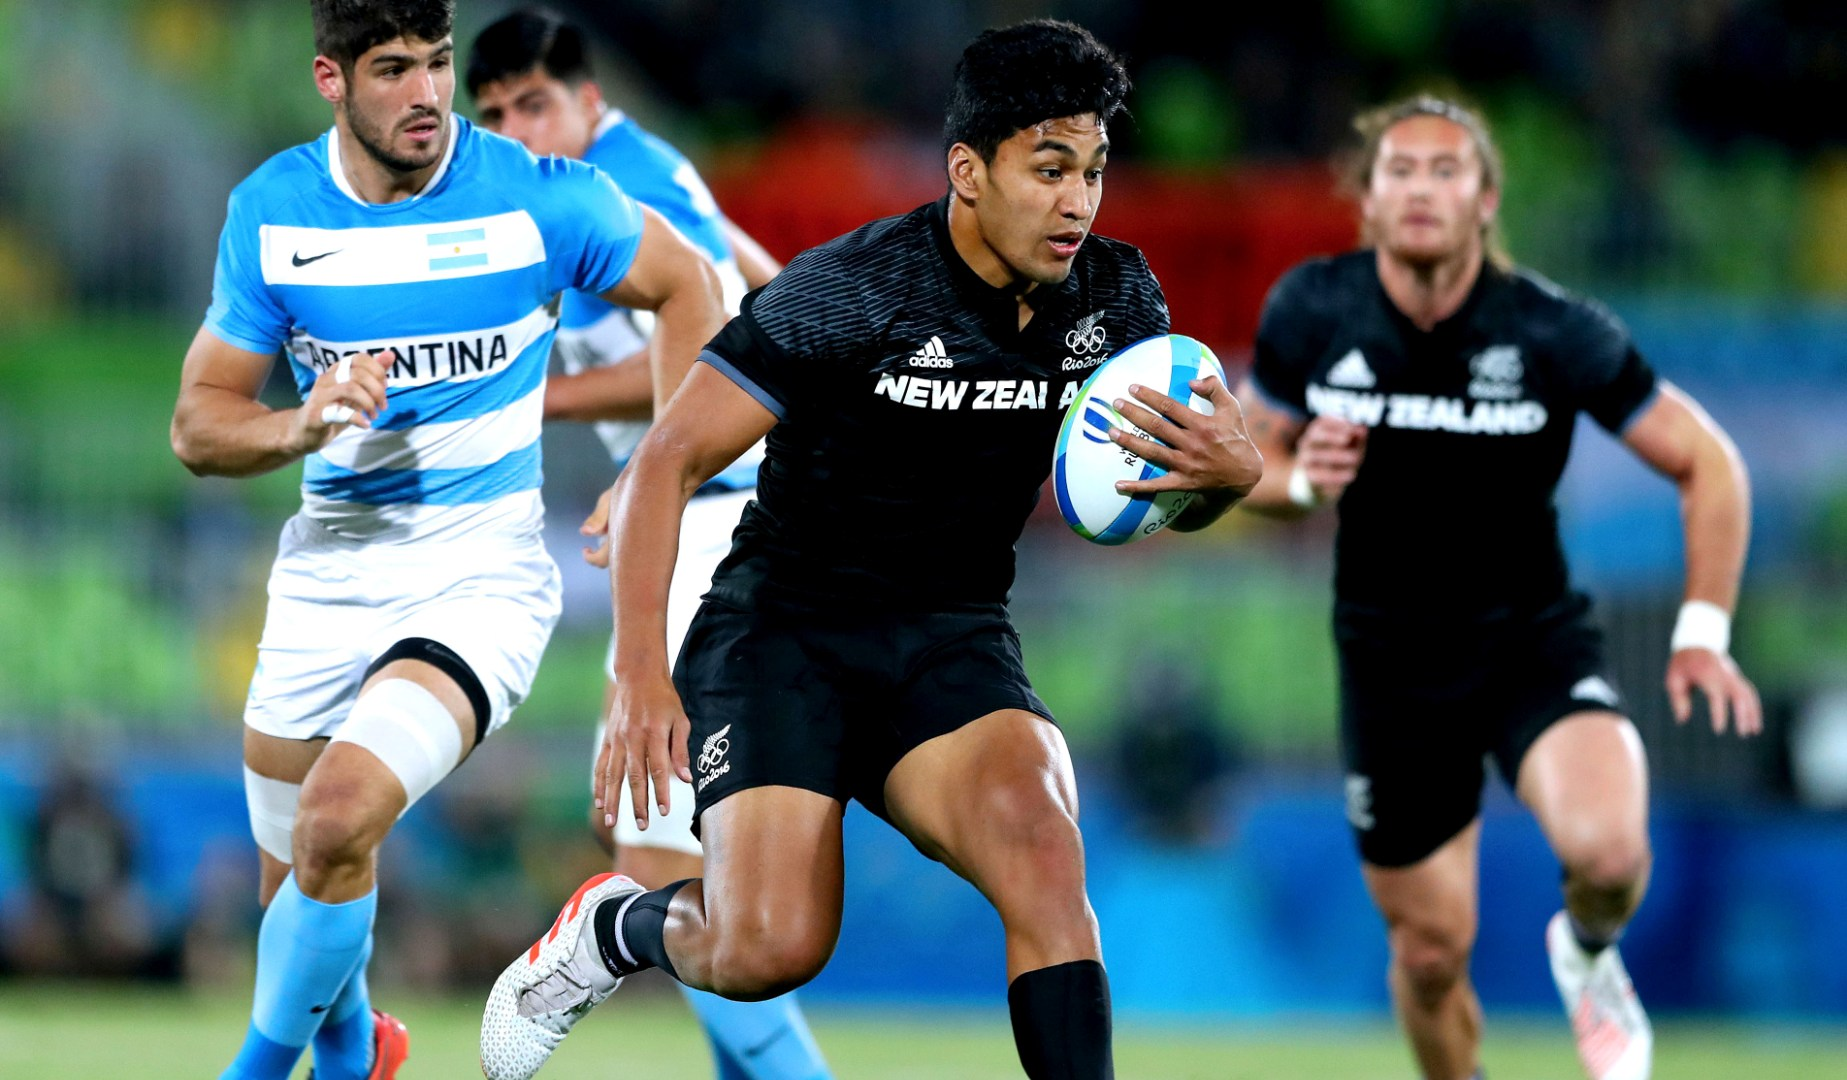 Teenager Ioane called up by All Blacks